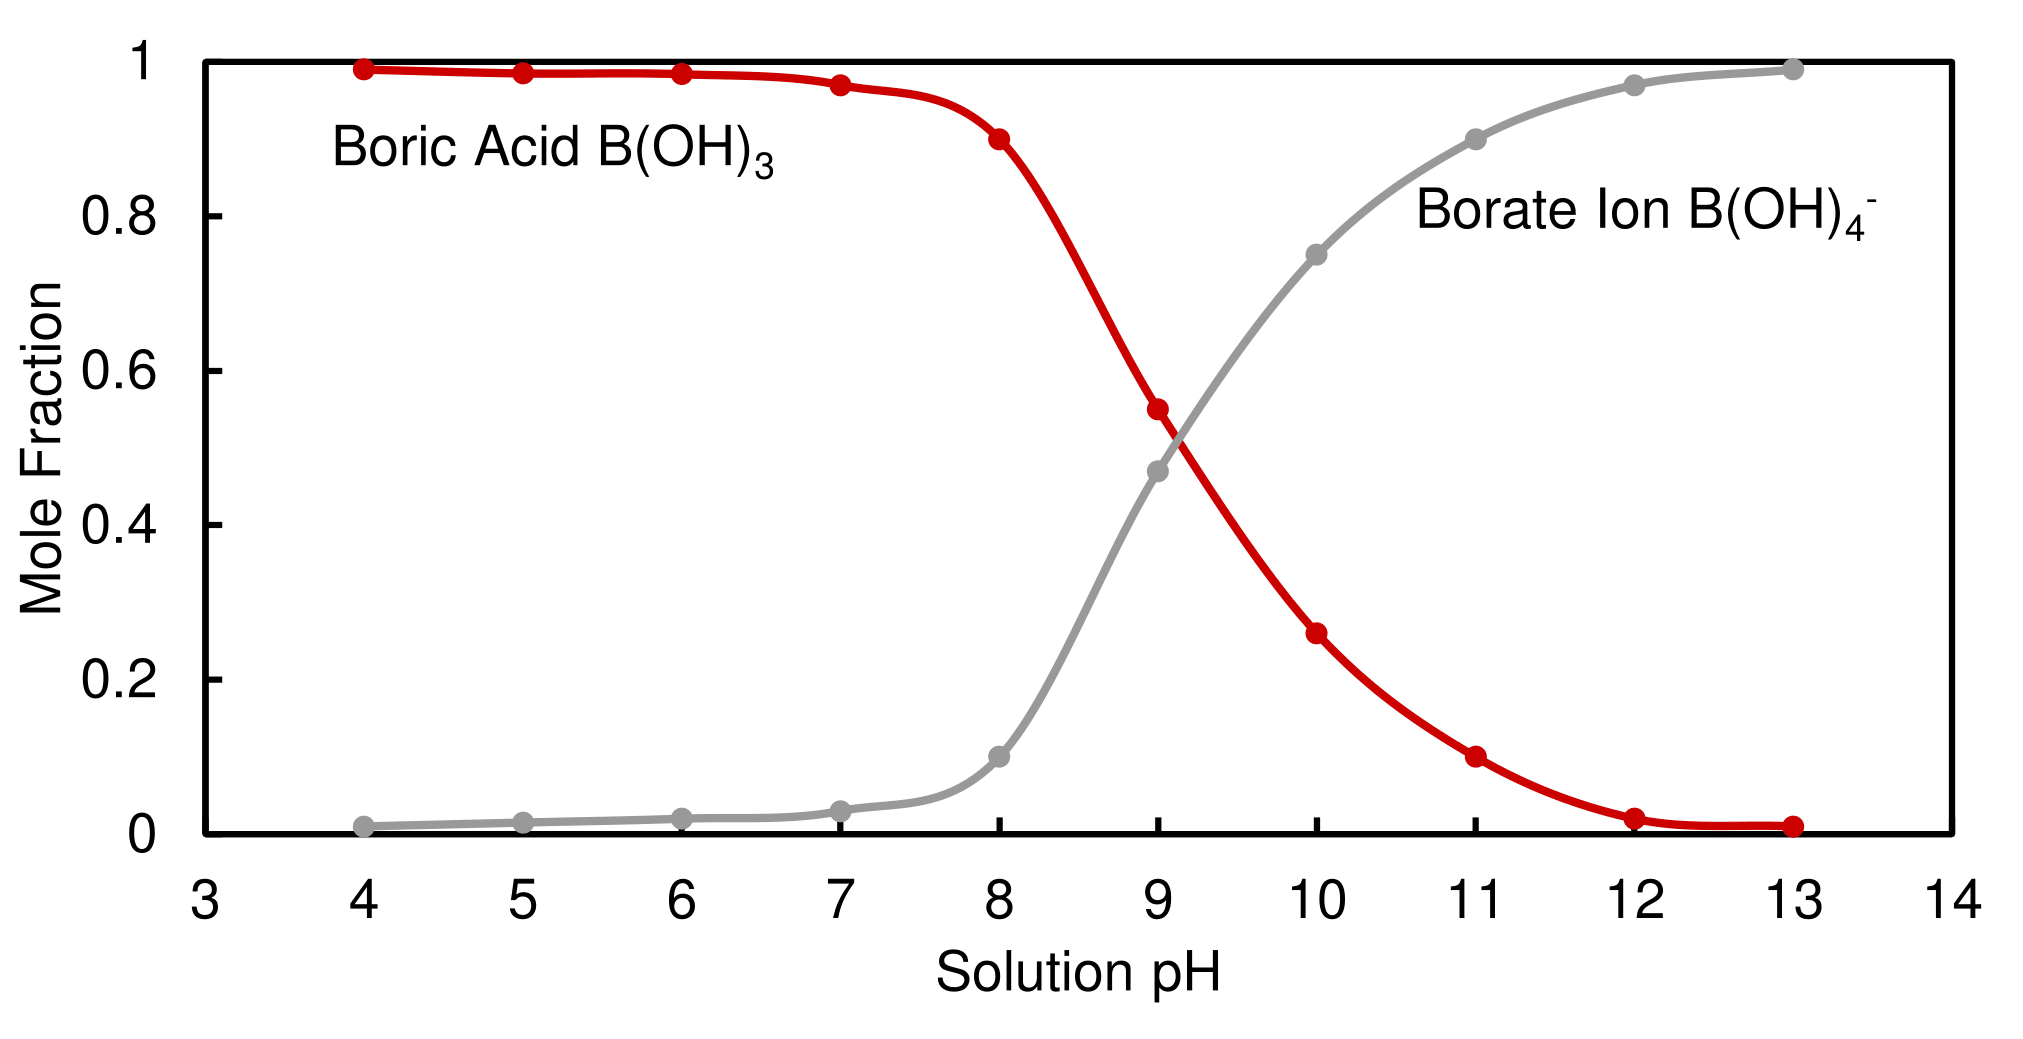 The approximate mole fraction of each species of boron at various pH. Boric acid becomes prevalent at pH < 8 whereas borate ion becomes dominant at ph > 10.